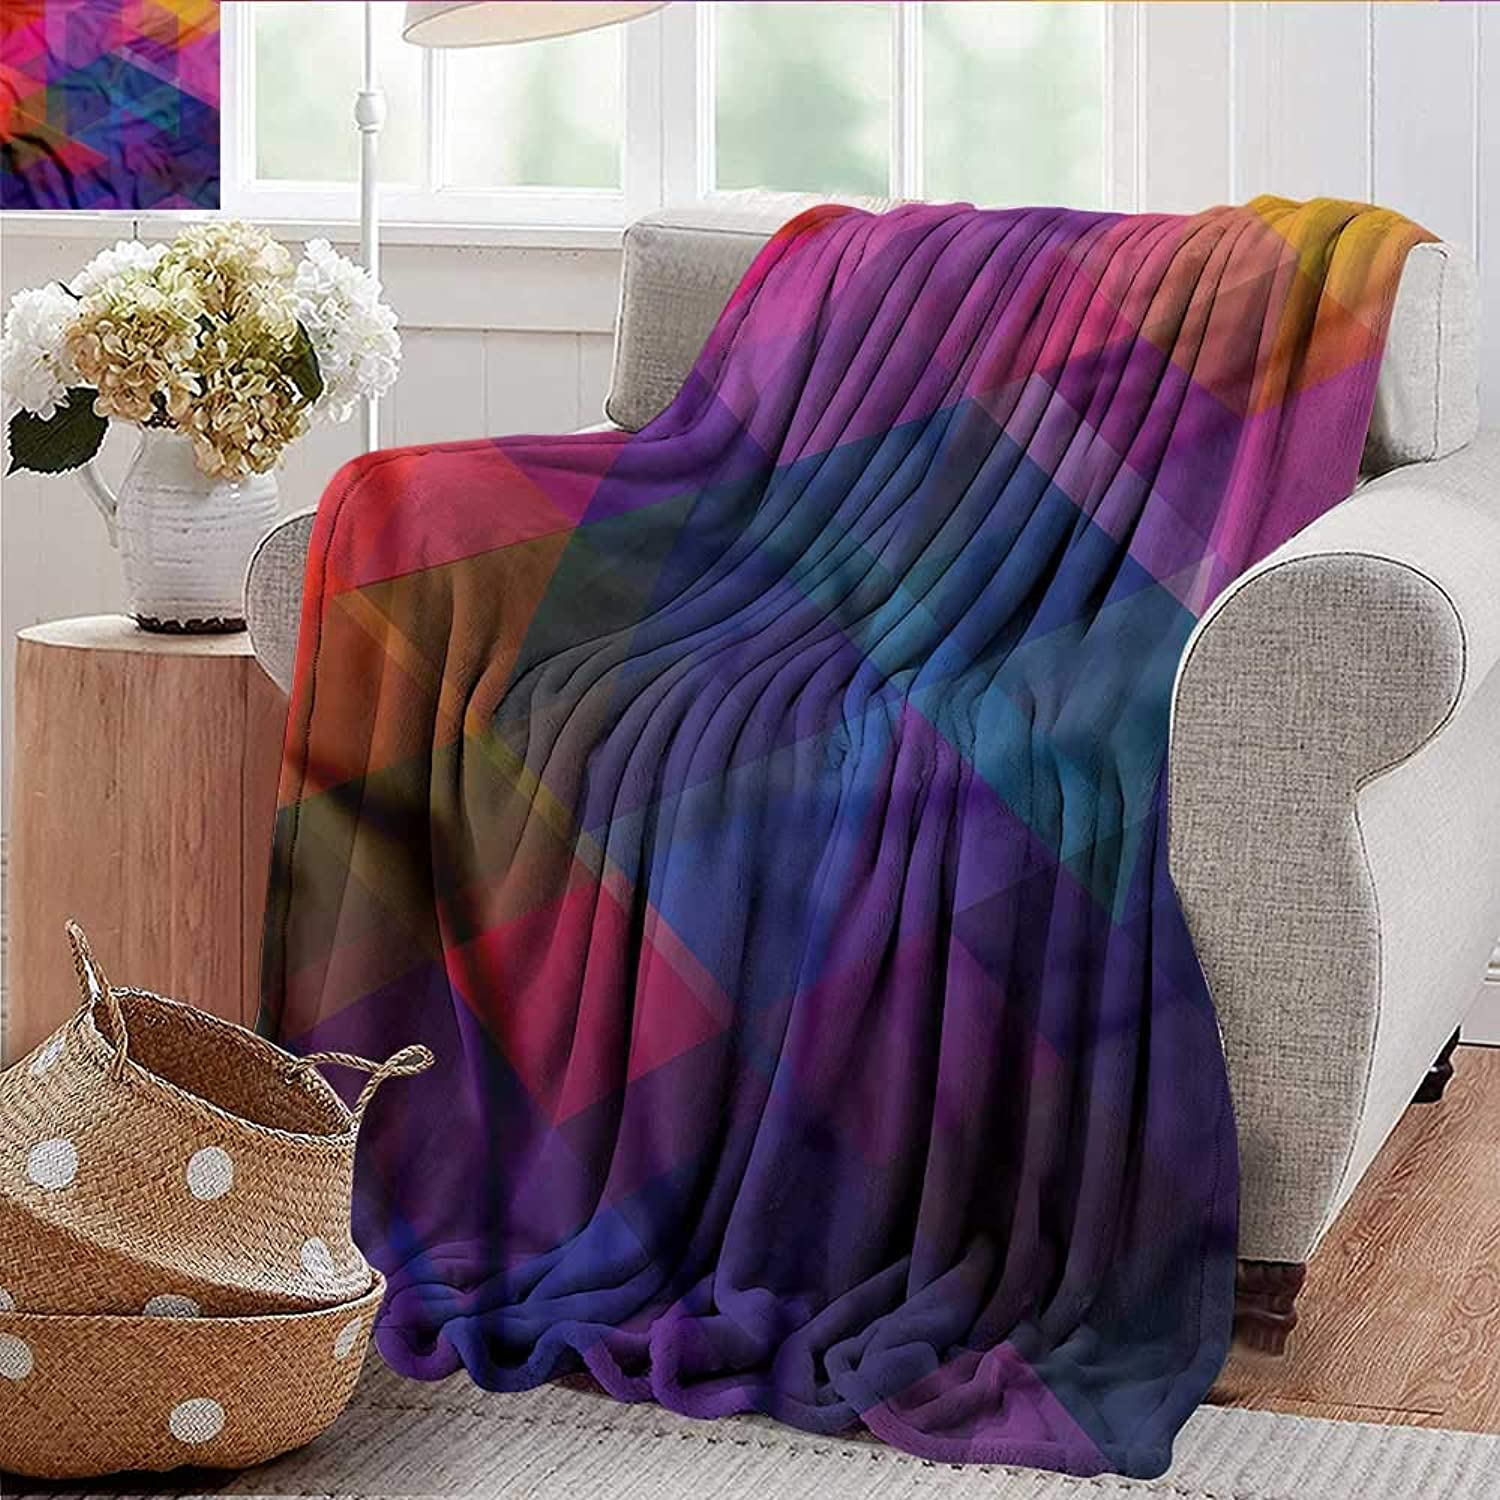 Xaviera Doherty Summer Blanket Abstract Triangle,Polygonal Modern Weighted Blanket for Adults Kids, Better Deeper Sleep 35 x60